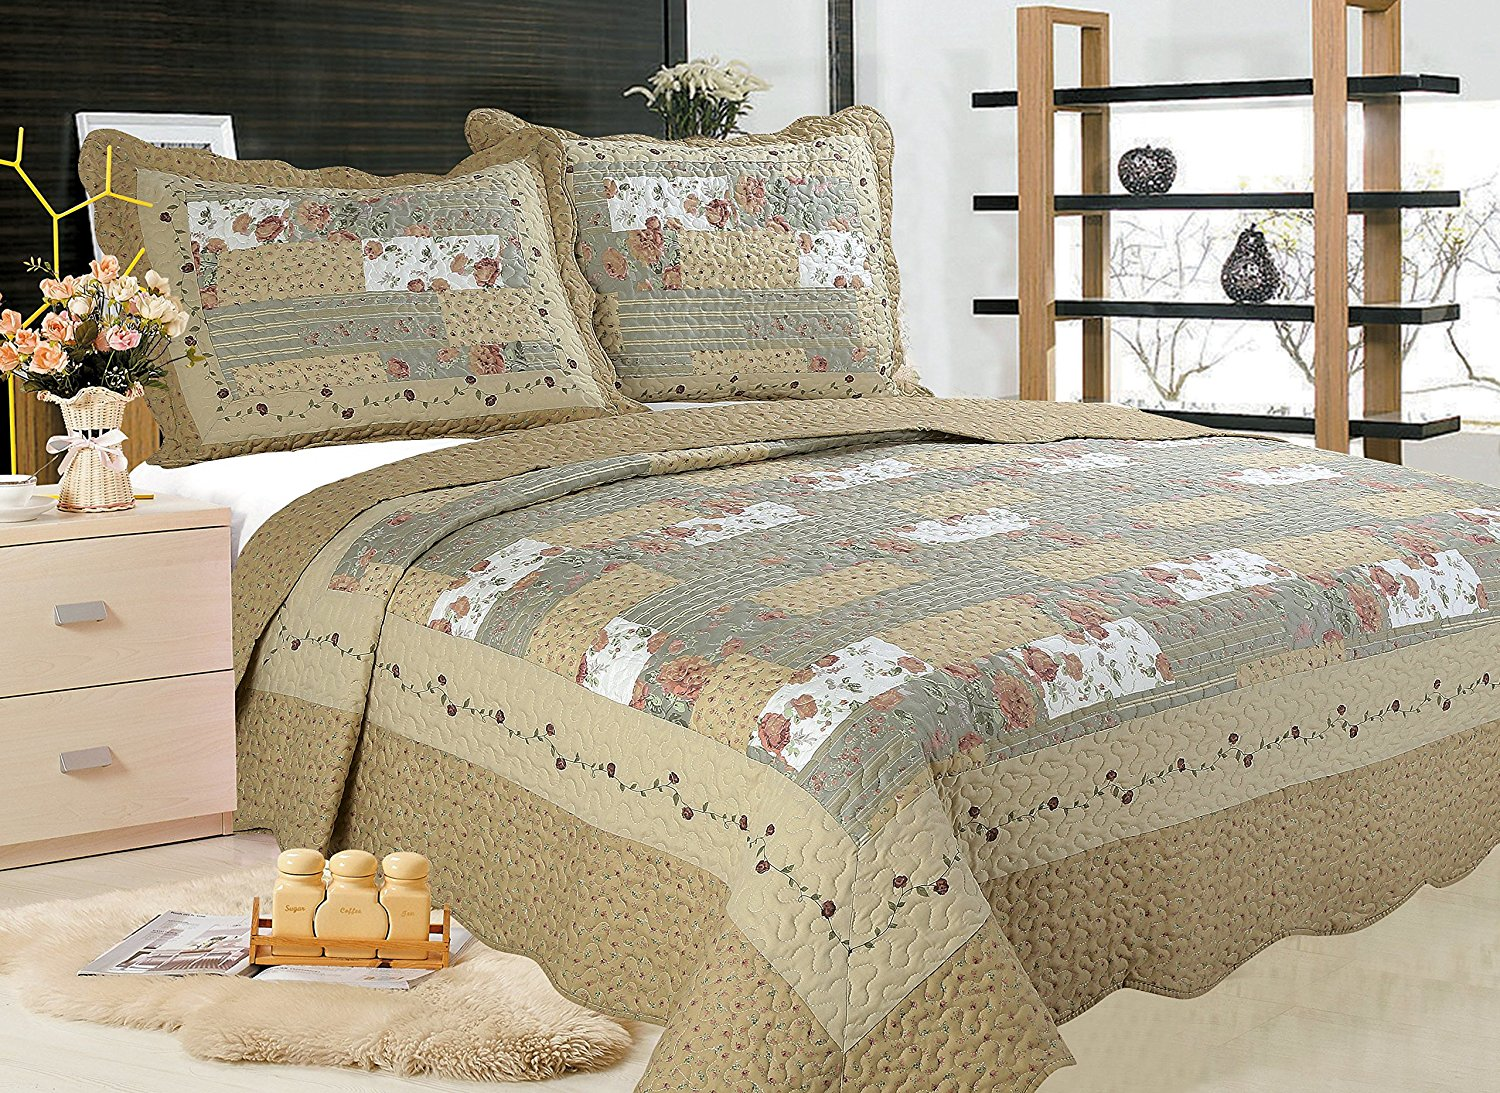 all for you 3pc reversible quilt set bedspread and coverlet with patchwork prints